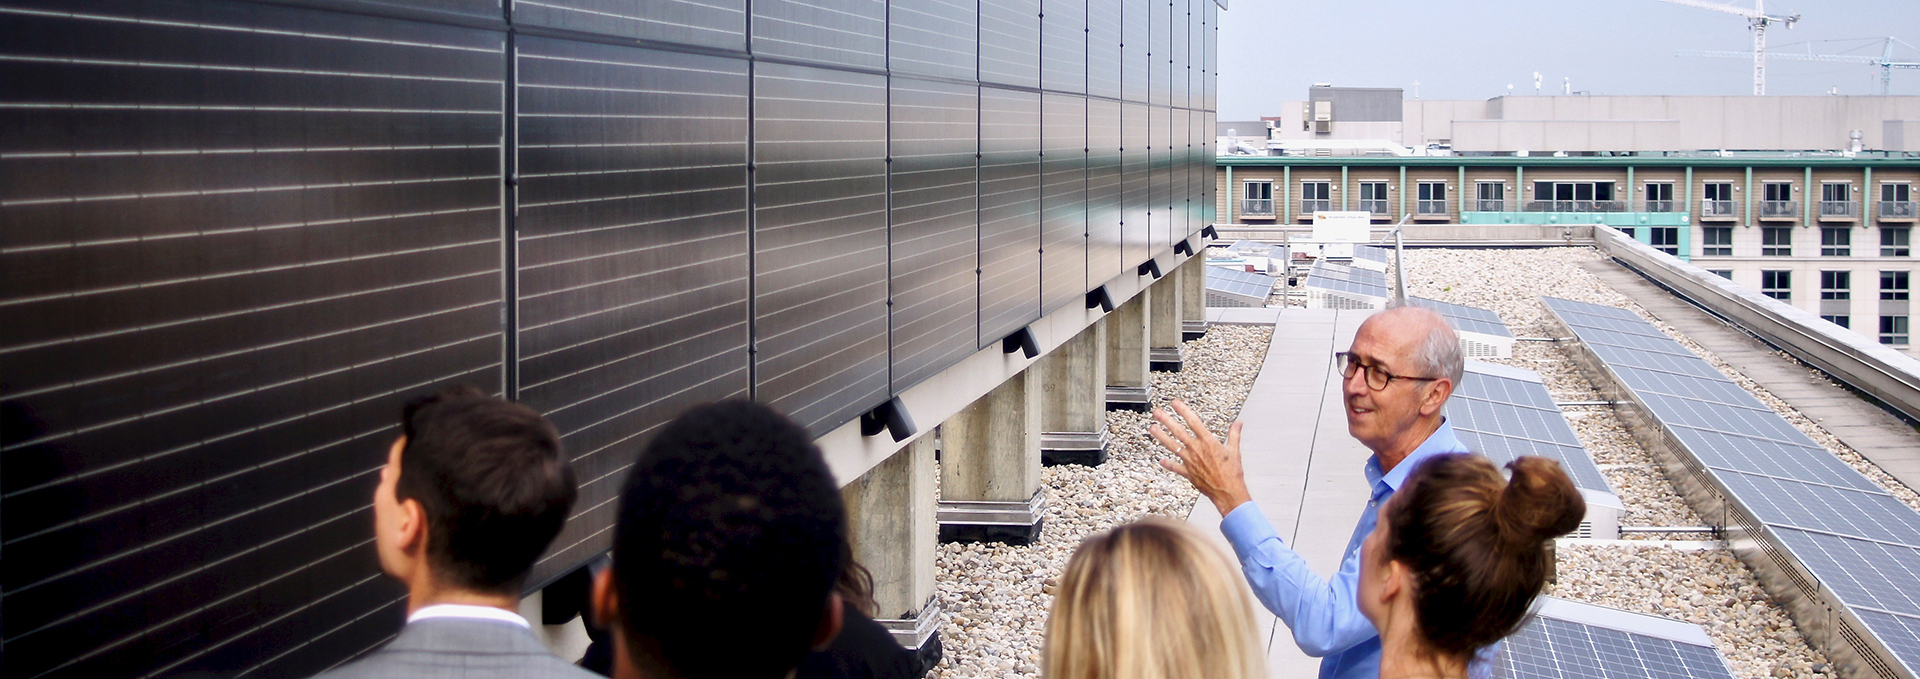 Photo on of a group of people on a rooftop looking at a large wall of solar panels on the left of them